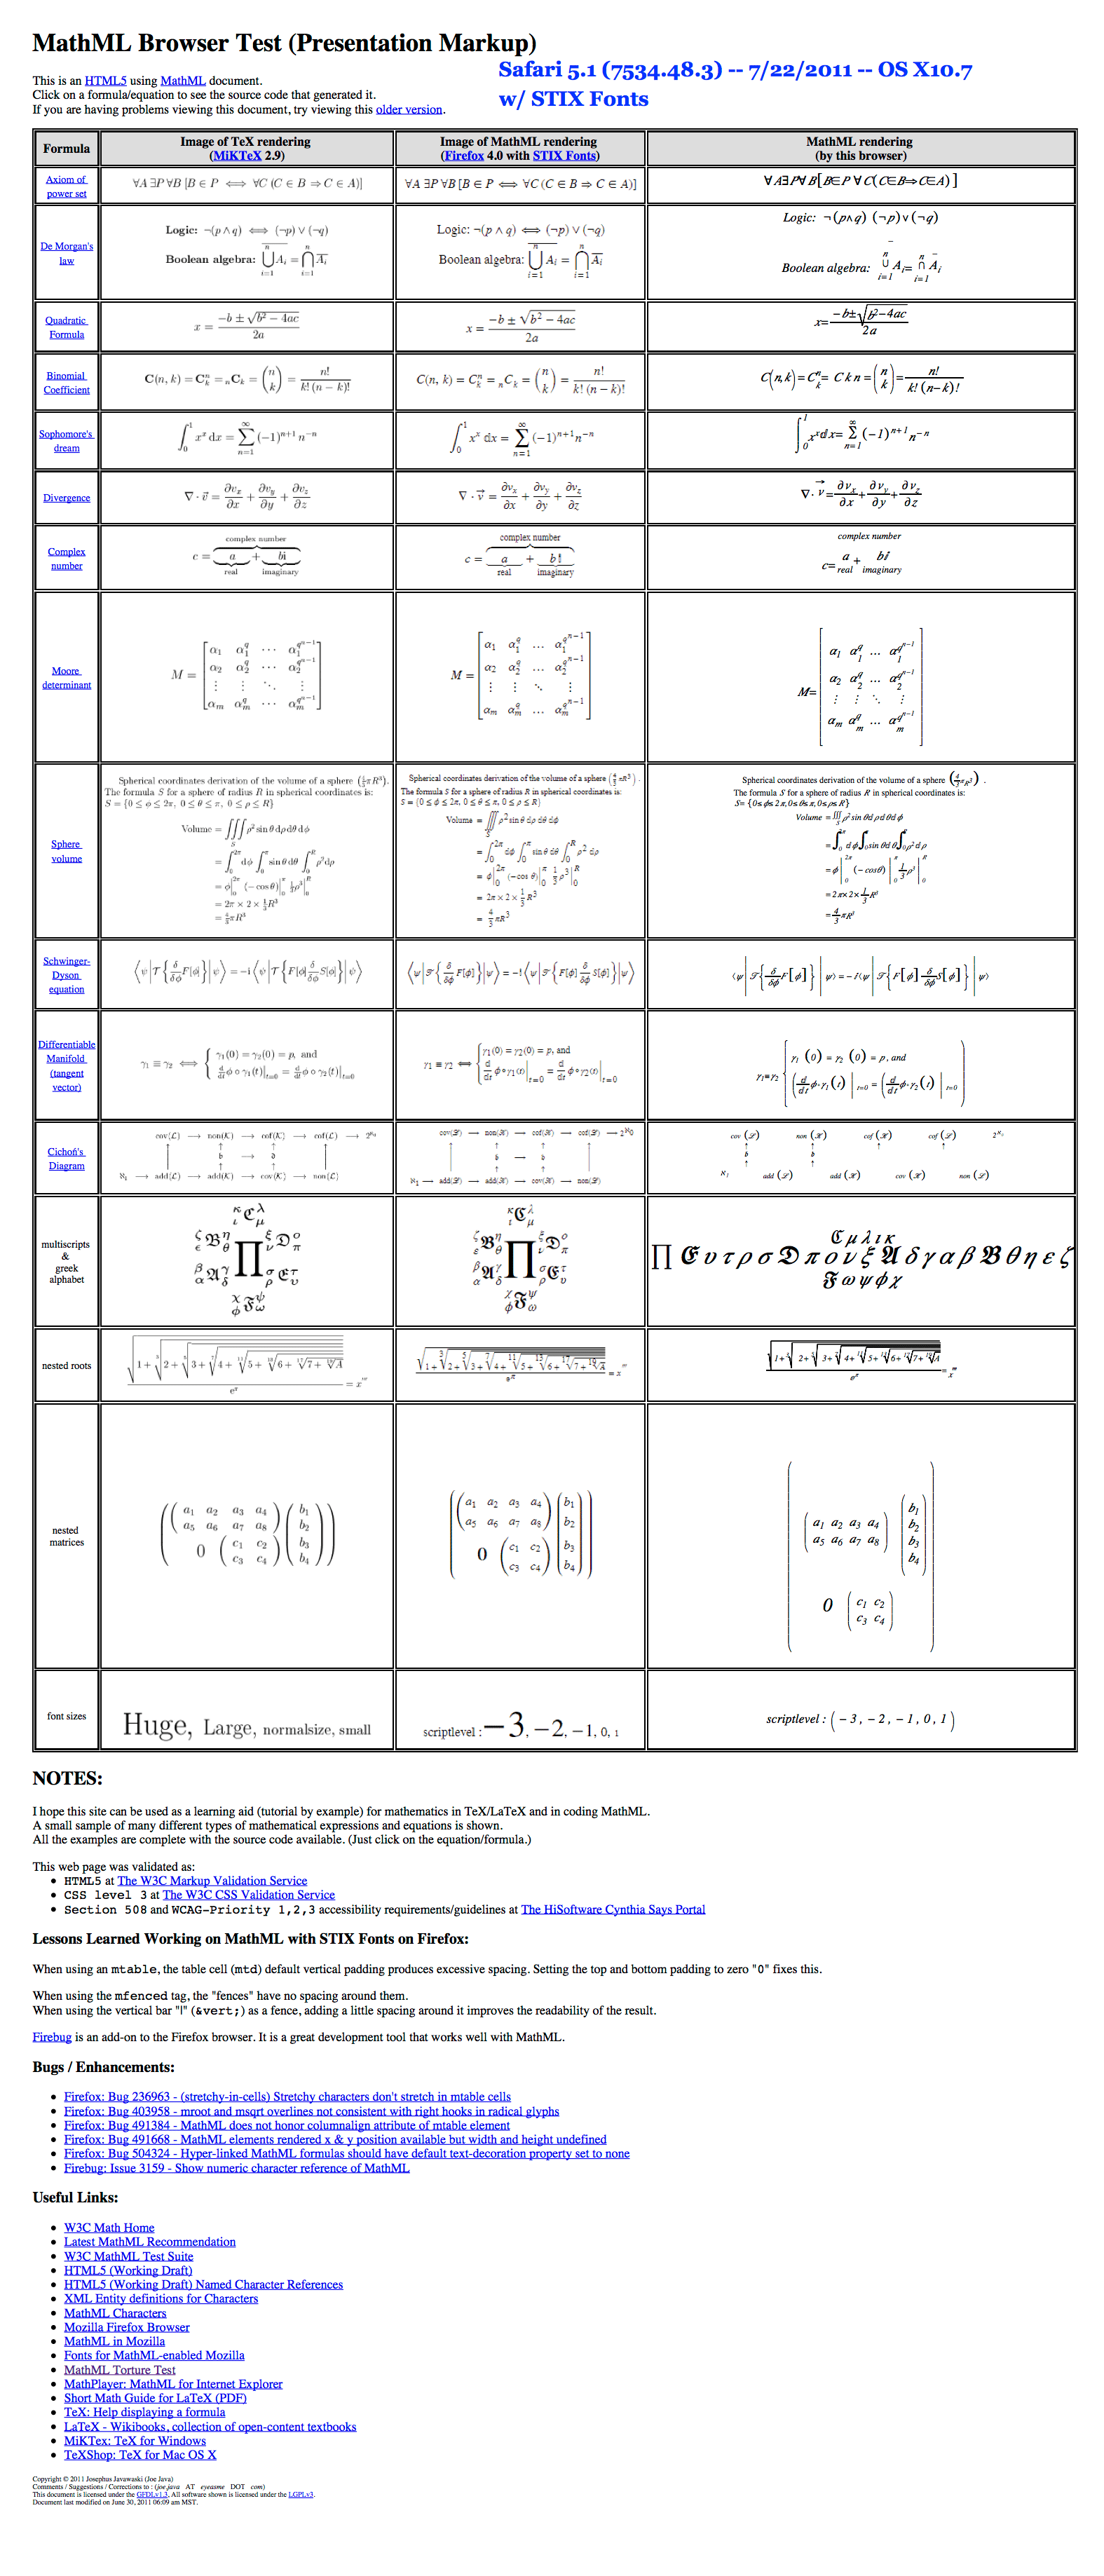 mathml_browser_test_2011_0722.png